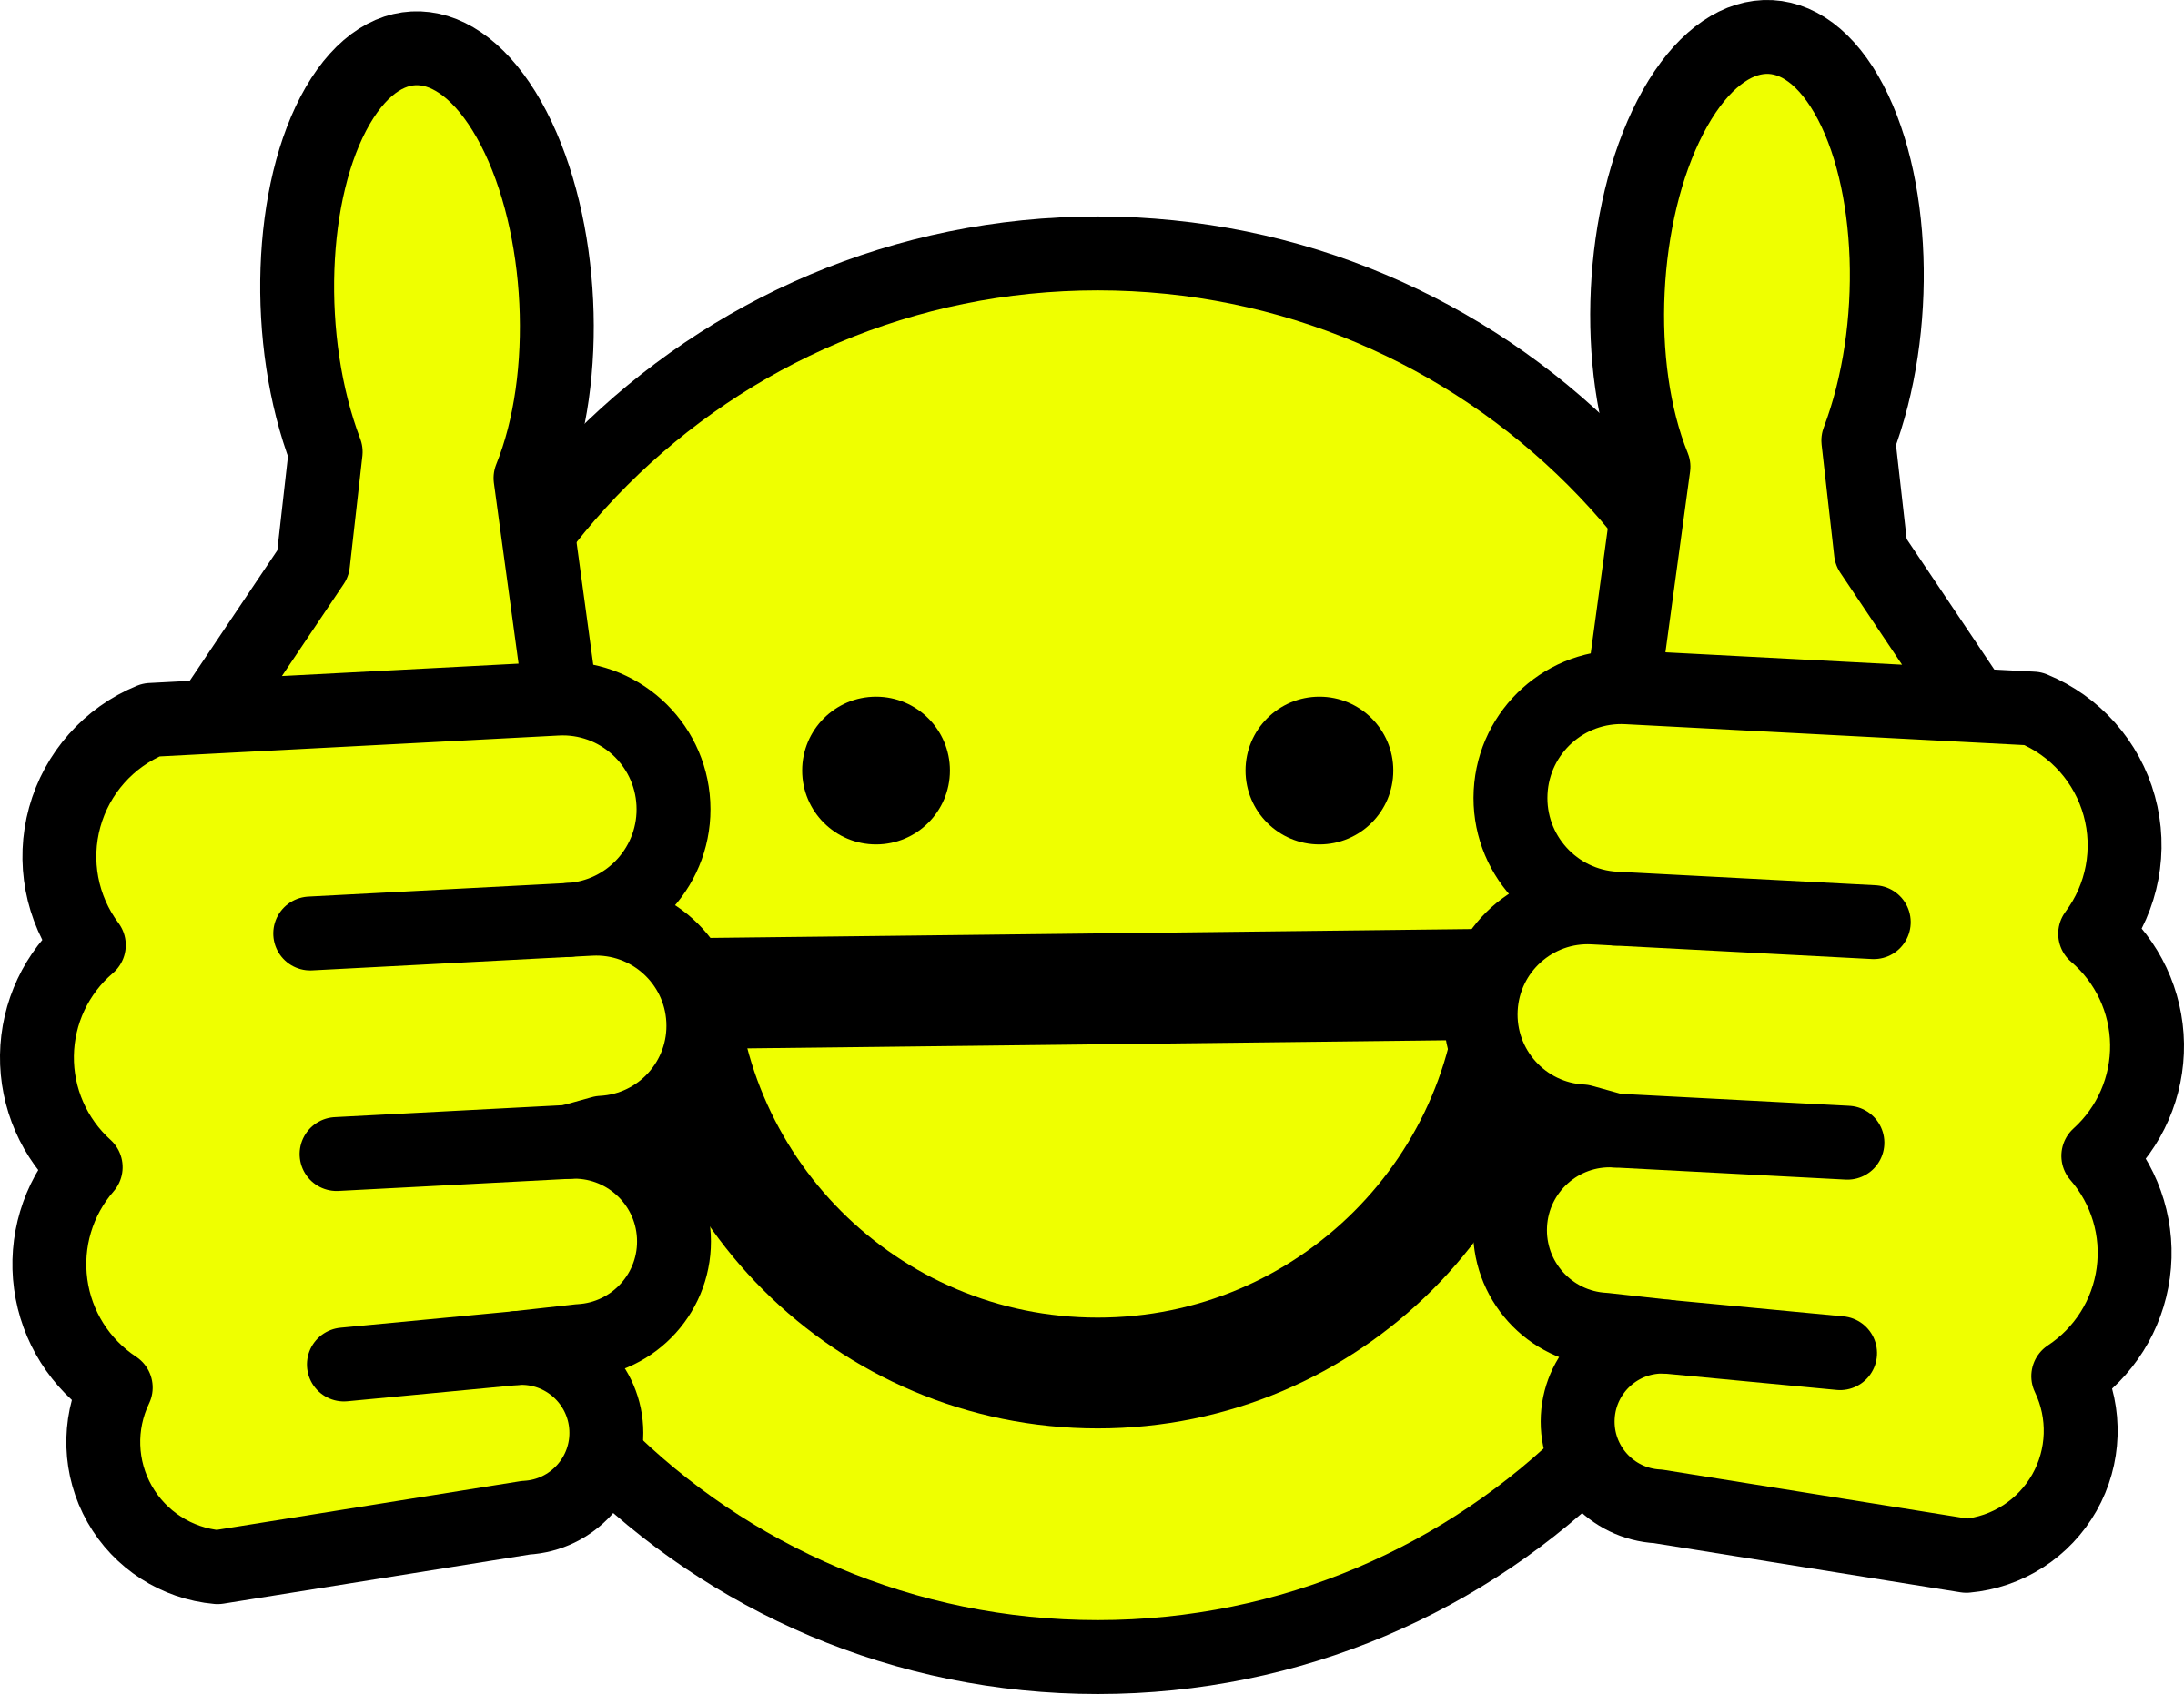 Awesome smiley face png. Good clipart transparent background